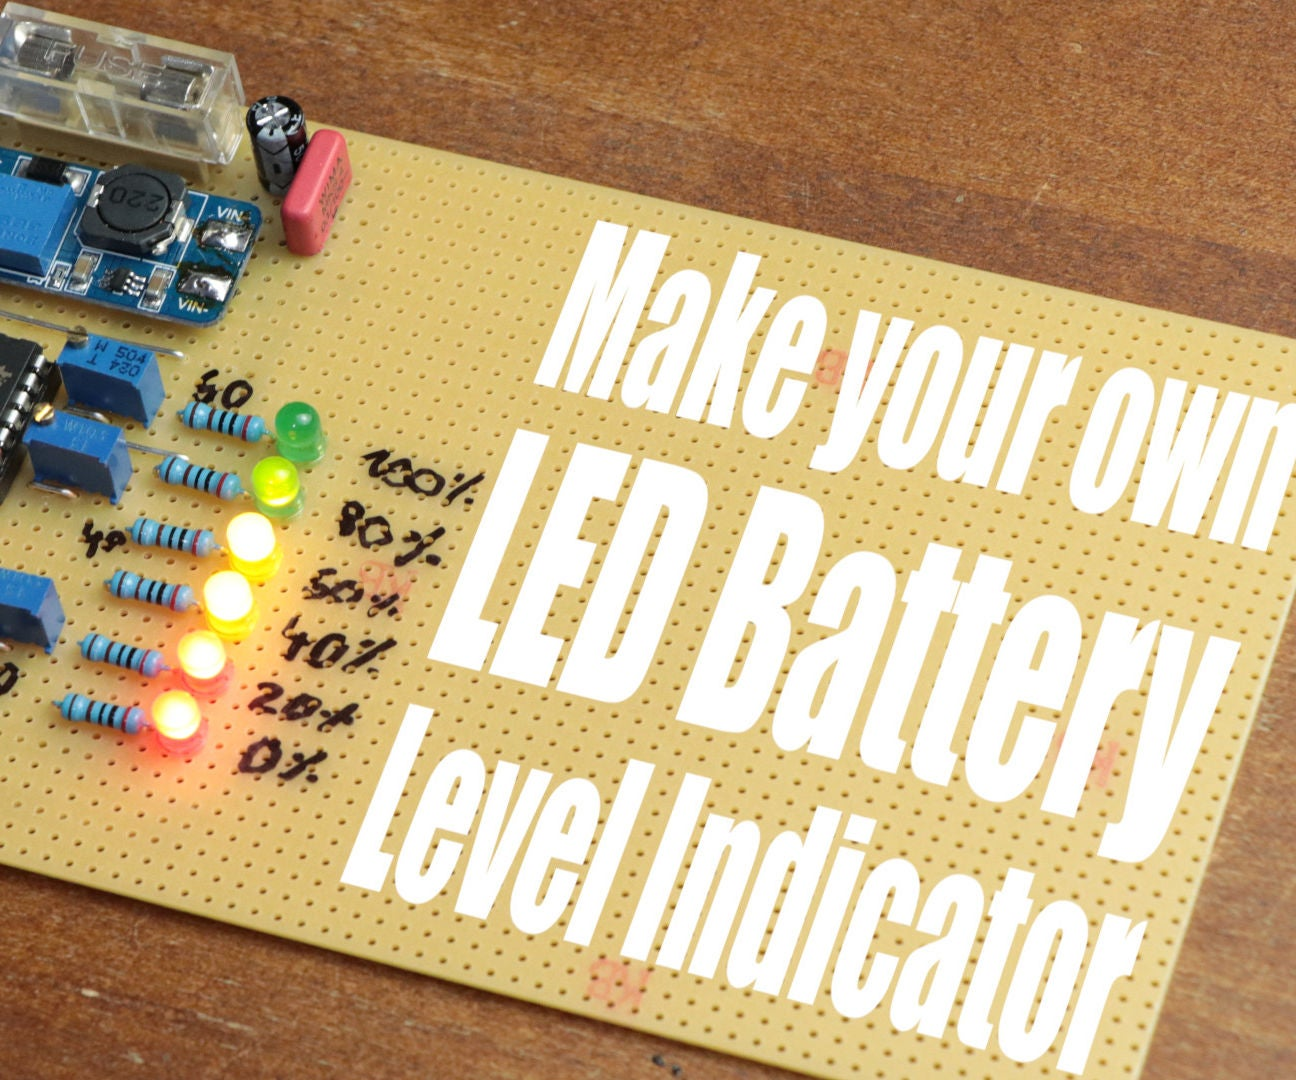 Make Your Own Led Battery Level Indicator 4 Steps The Lm324 Quad Comparator Circuit